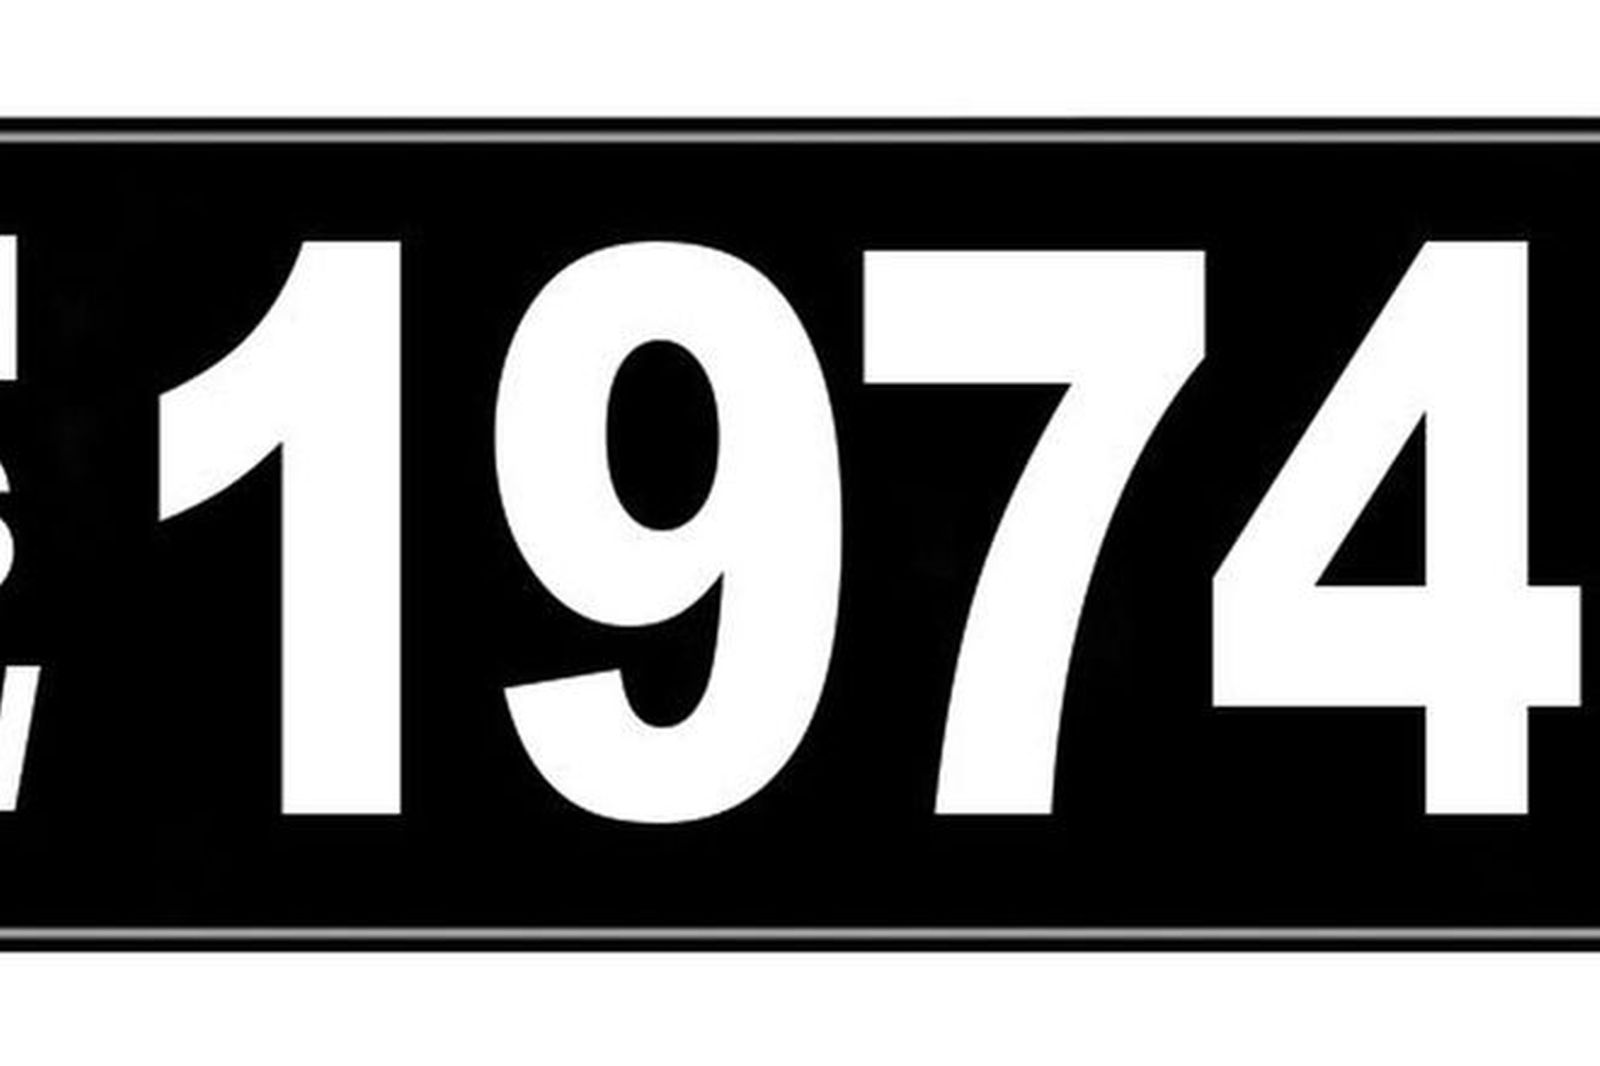 sold number plate nsw numerical number plate 1974 auctions